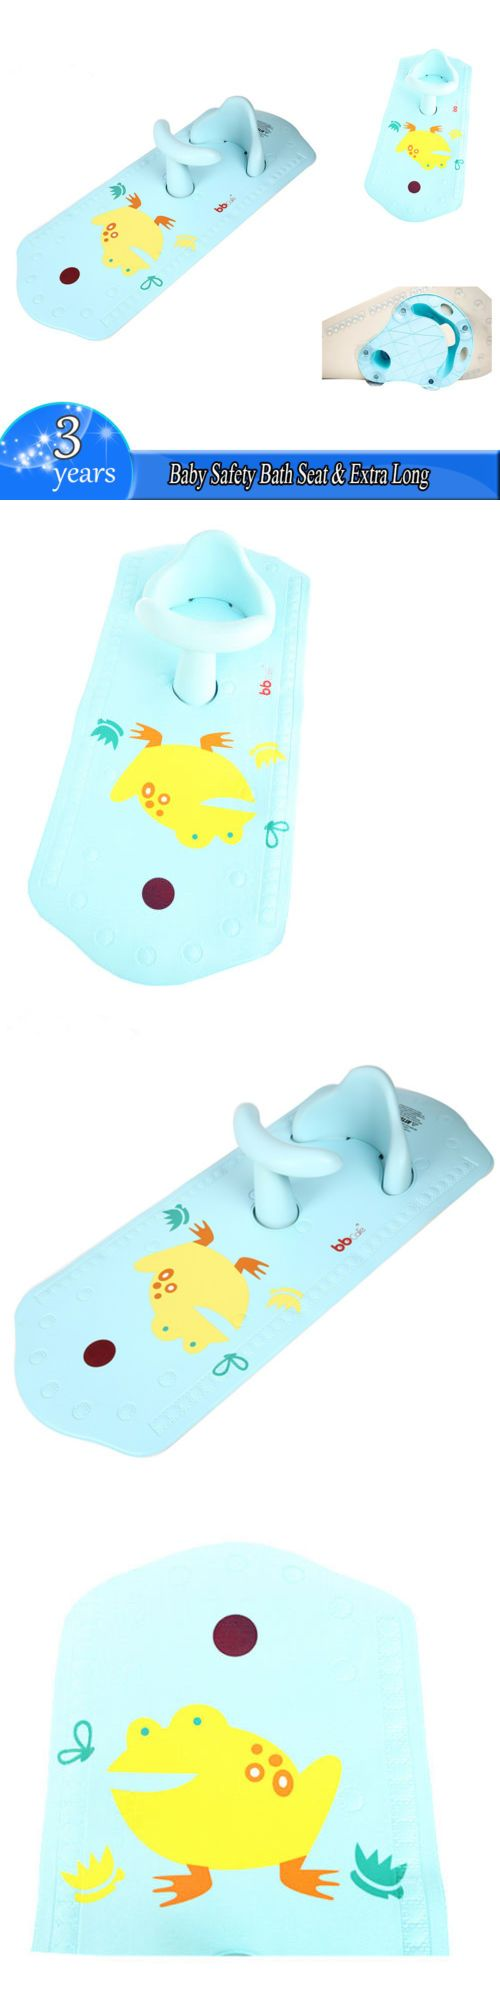 Baby Safety Bath Seat Extra Long Non-Slip Bath Mat with Heat ...